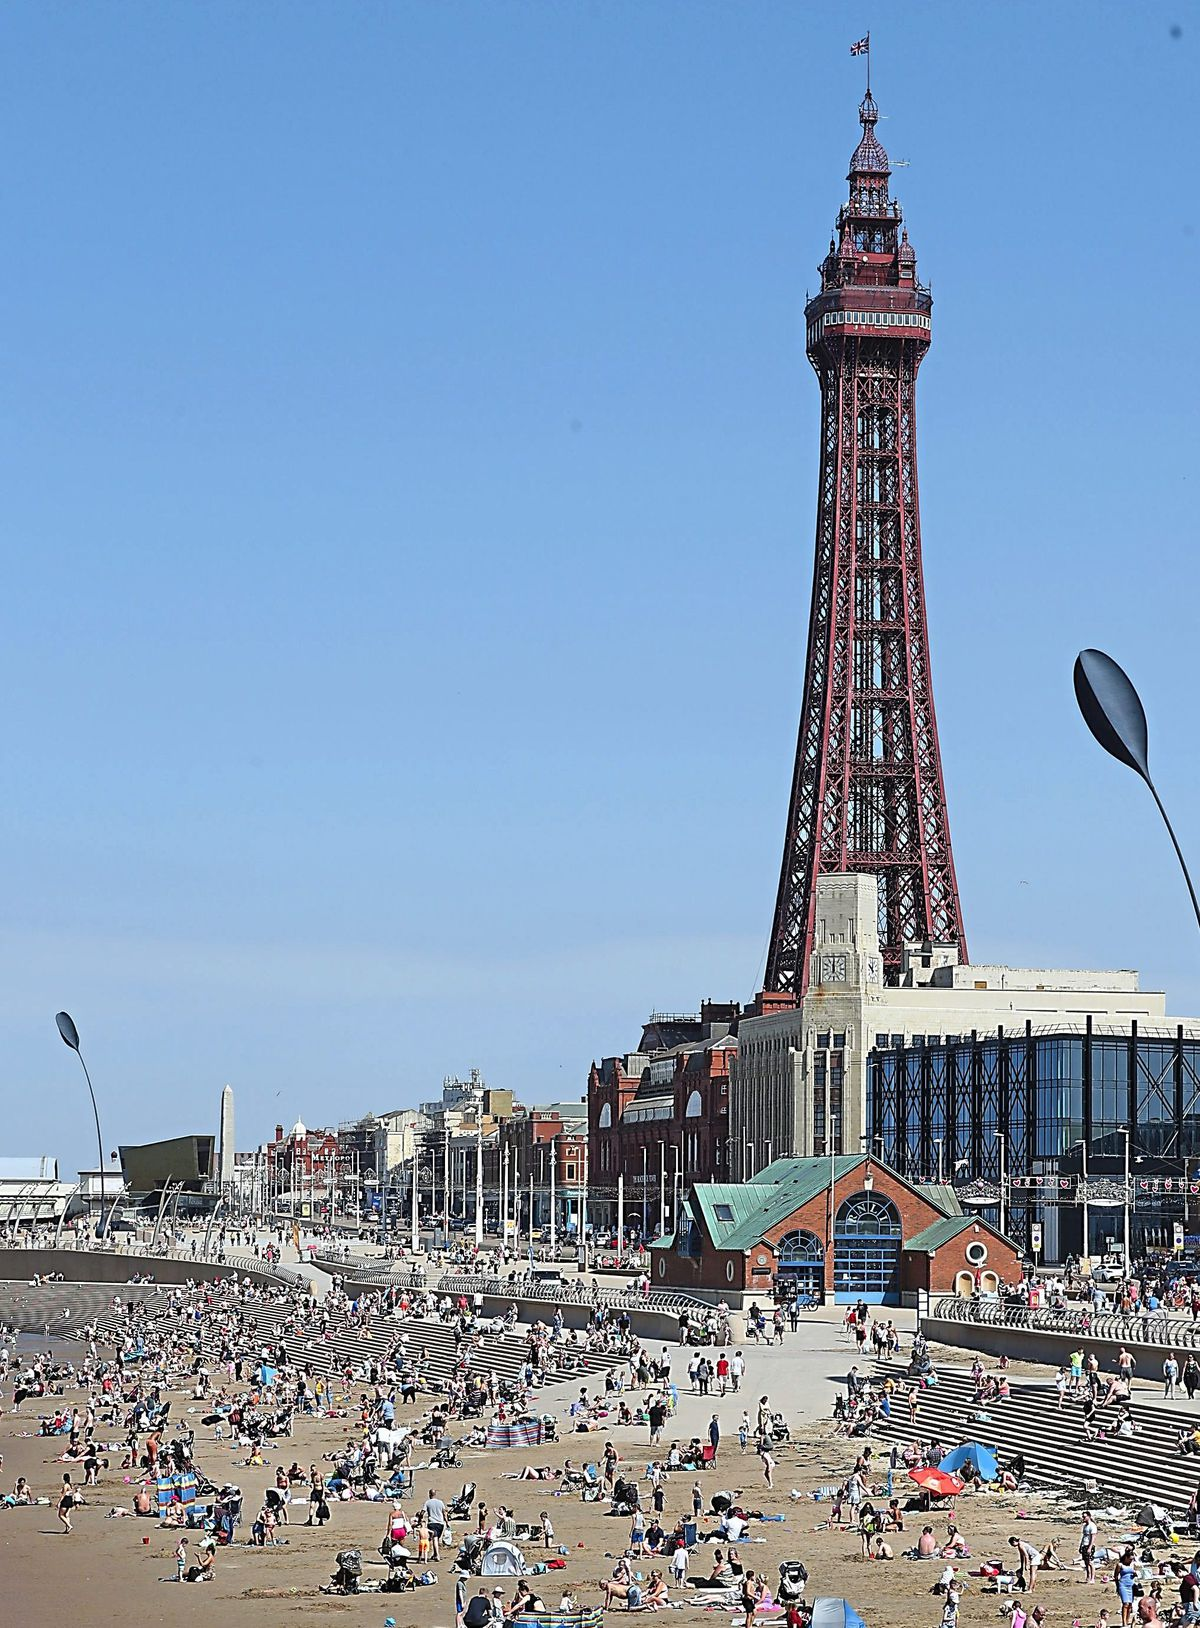 People enjoy the hot weather at Blackpool beach